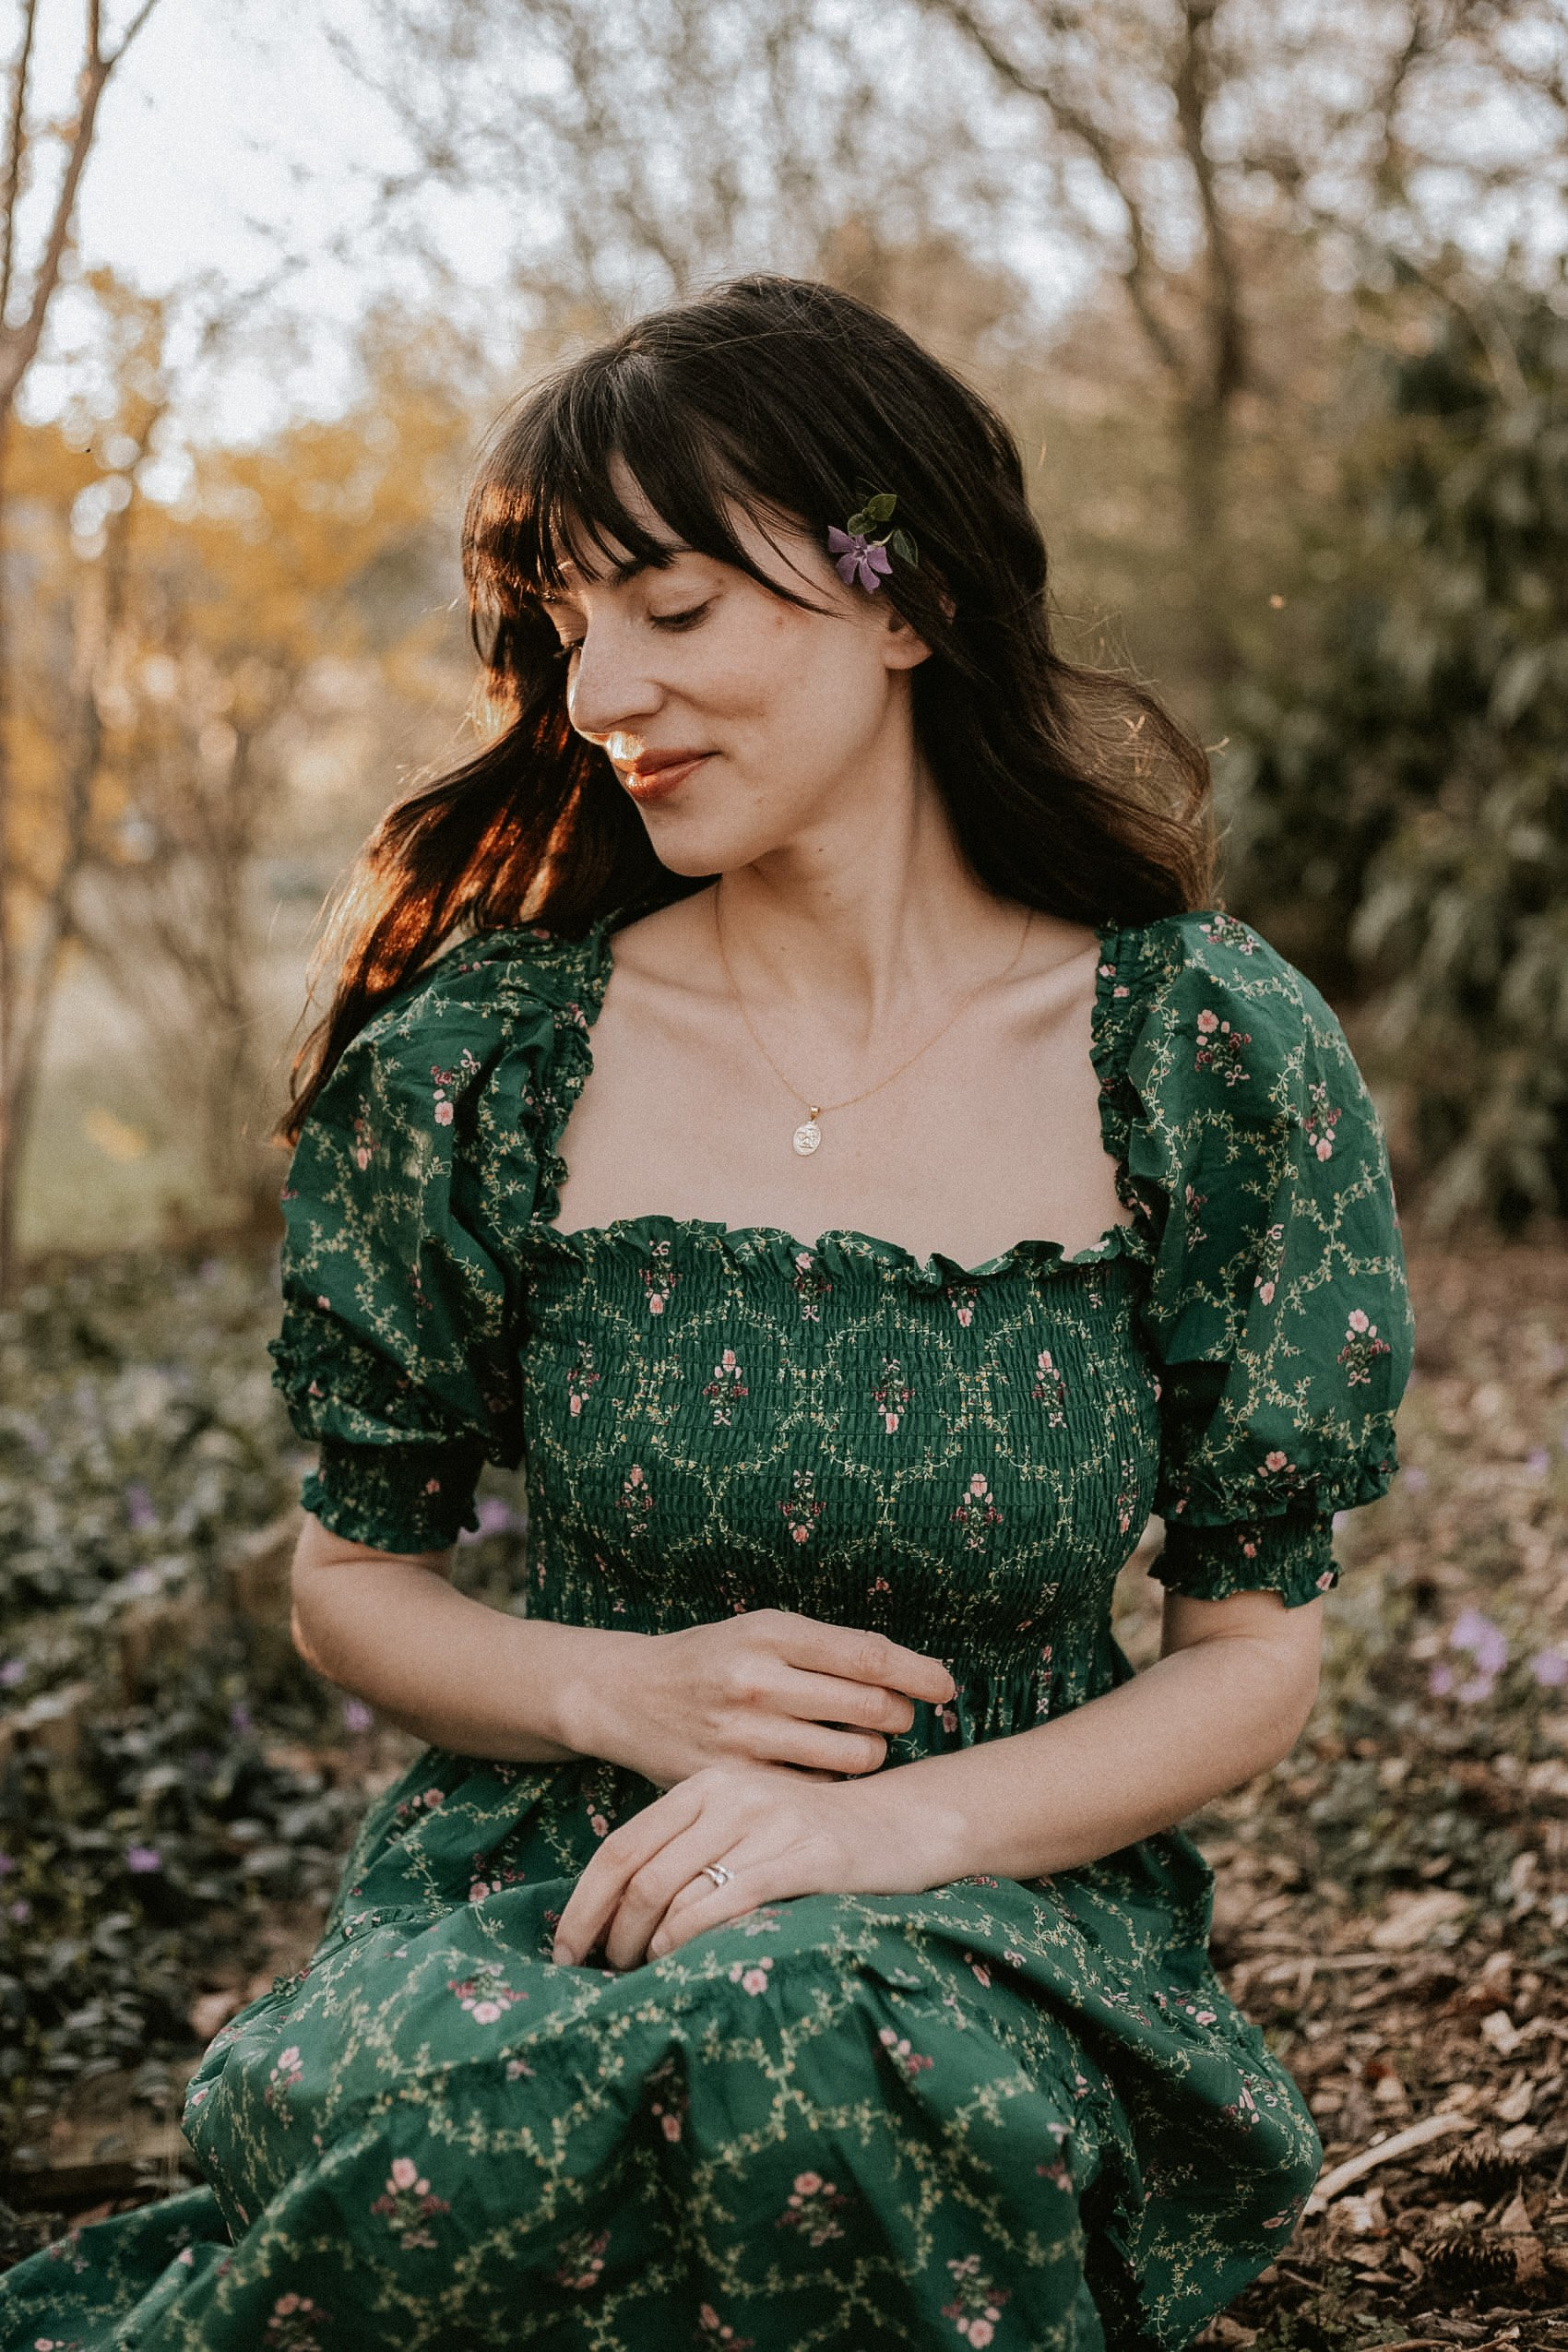 Square Neck Smocked cottagecore dress on woman sitting in the woods